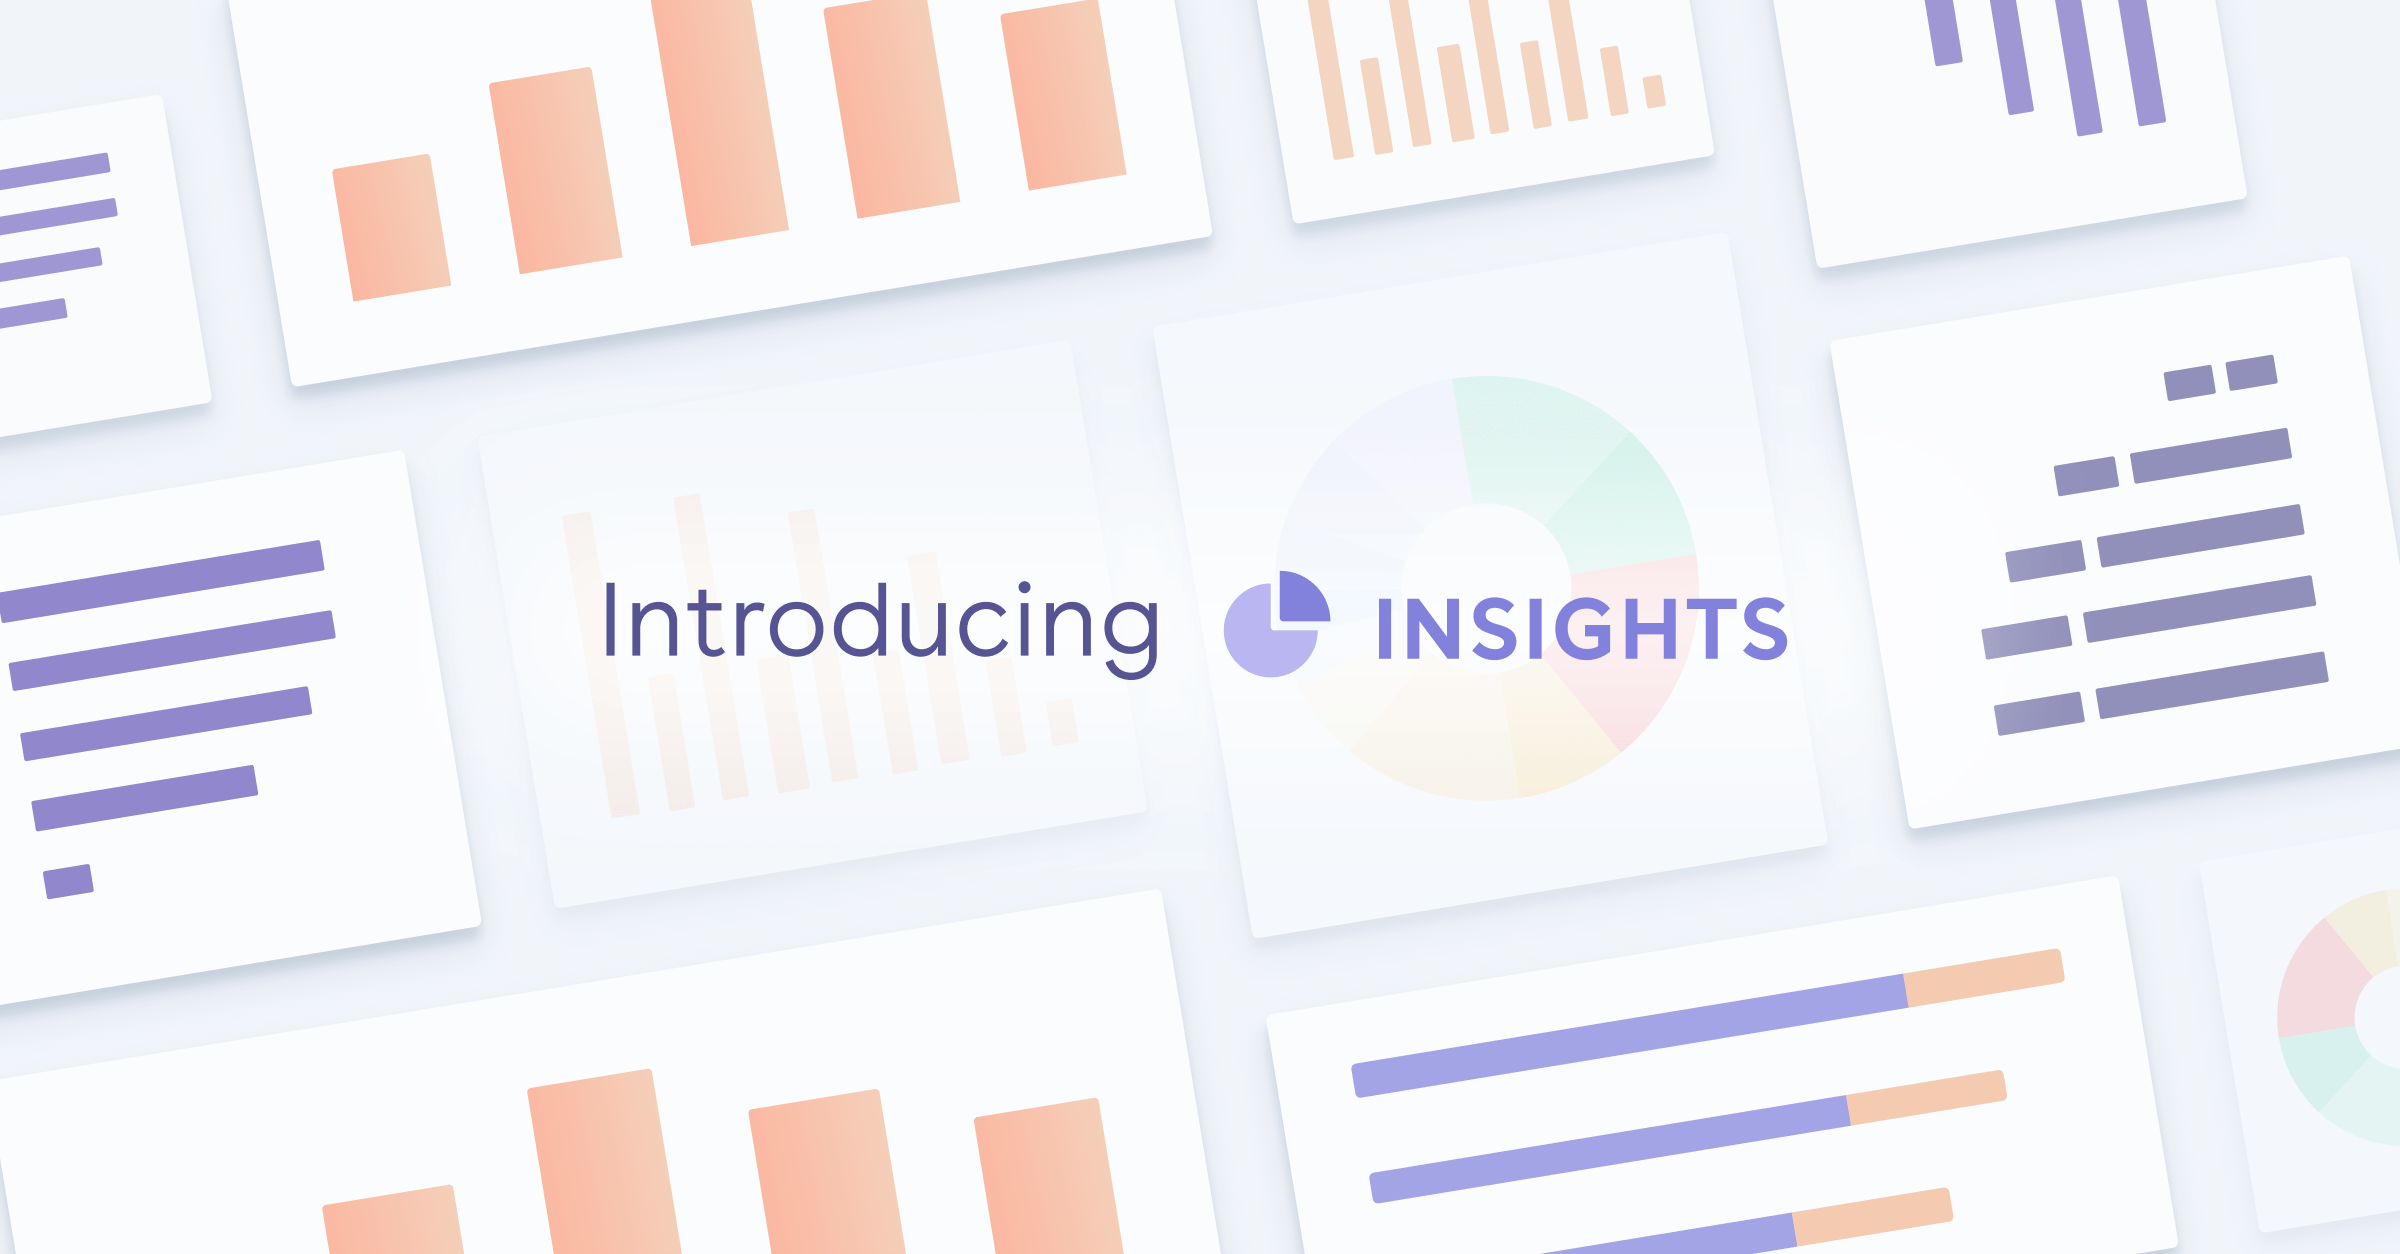 Introducing Insights